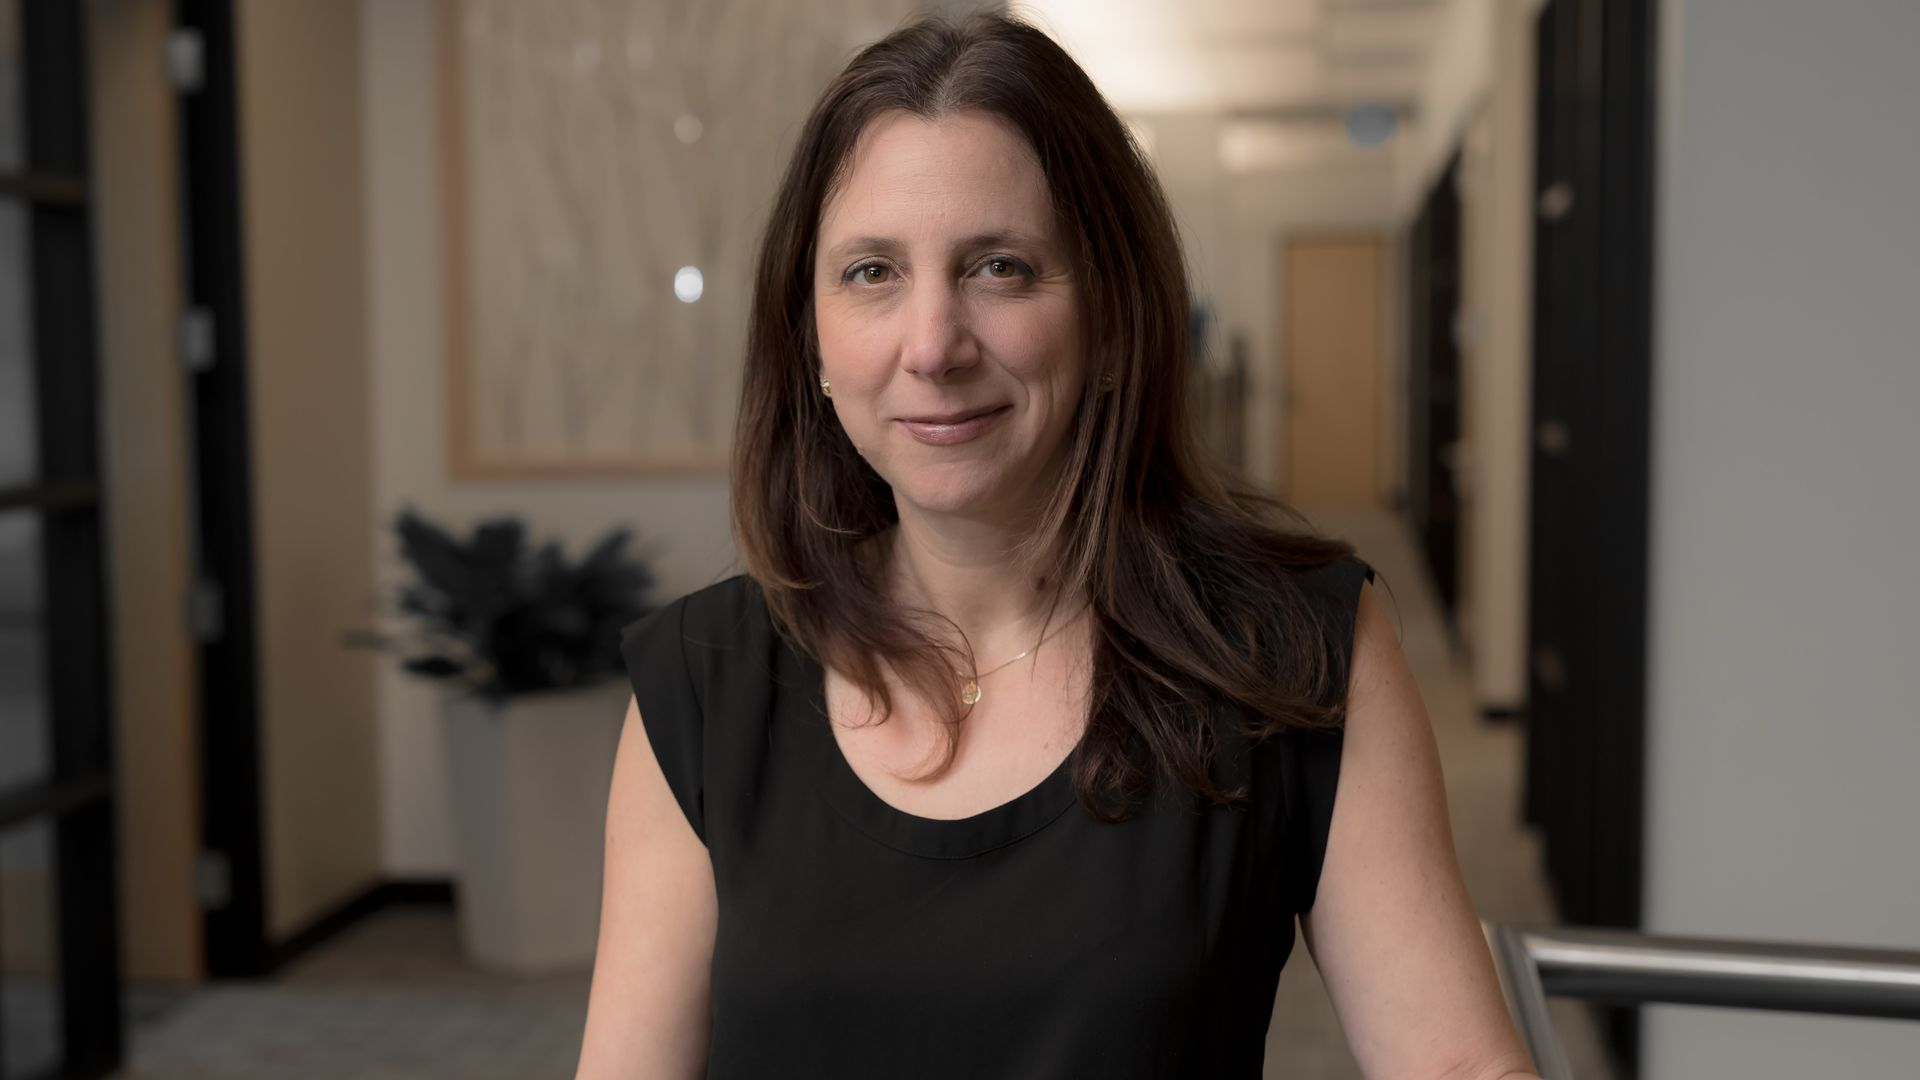 Photo of Paula Goldman, who's the global lead for Omidyar Network's Tech and Society Solutions Lab